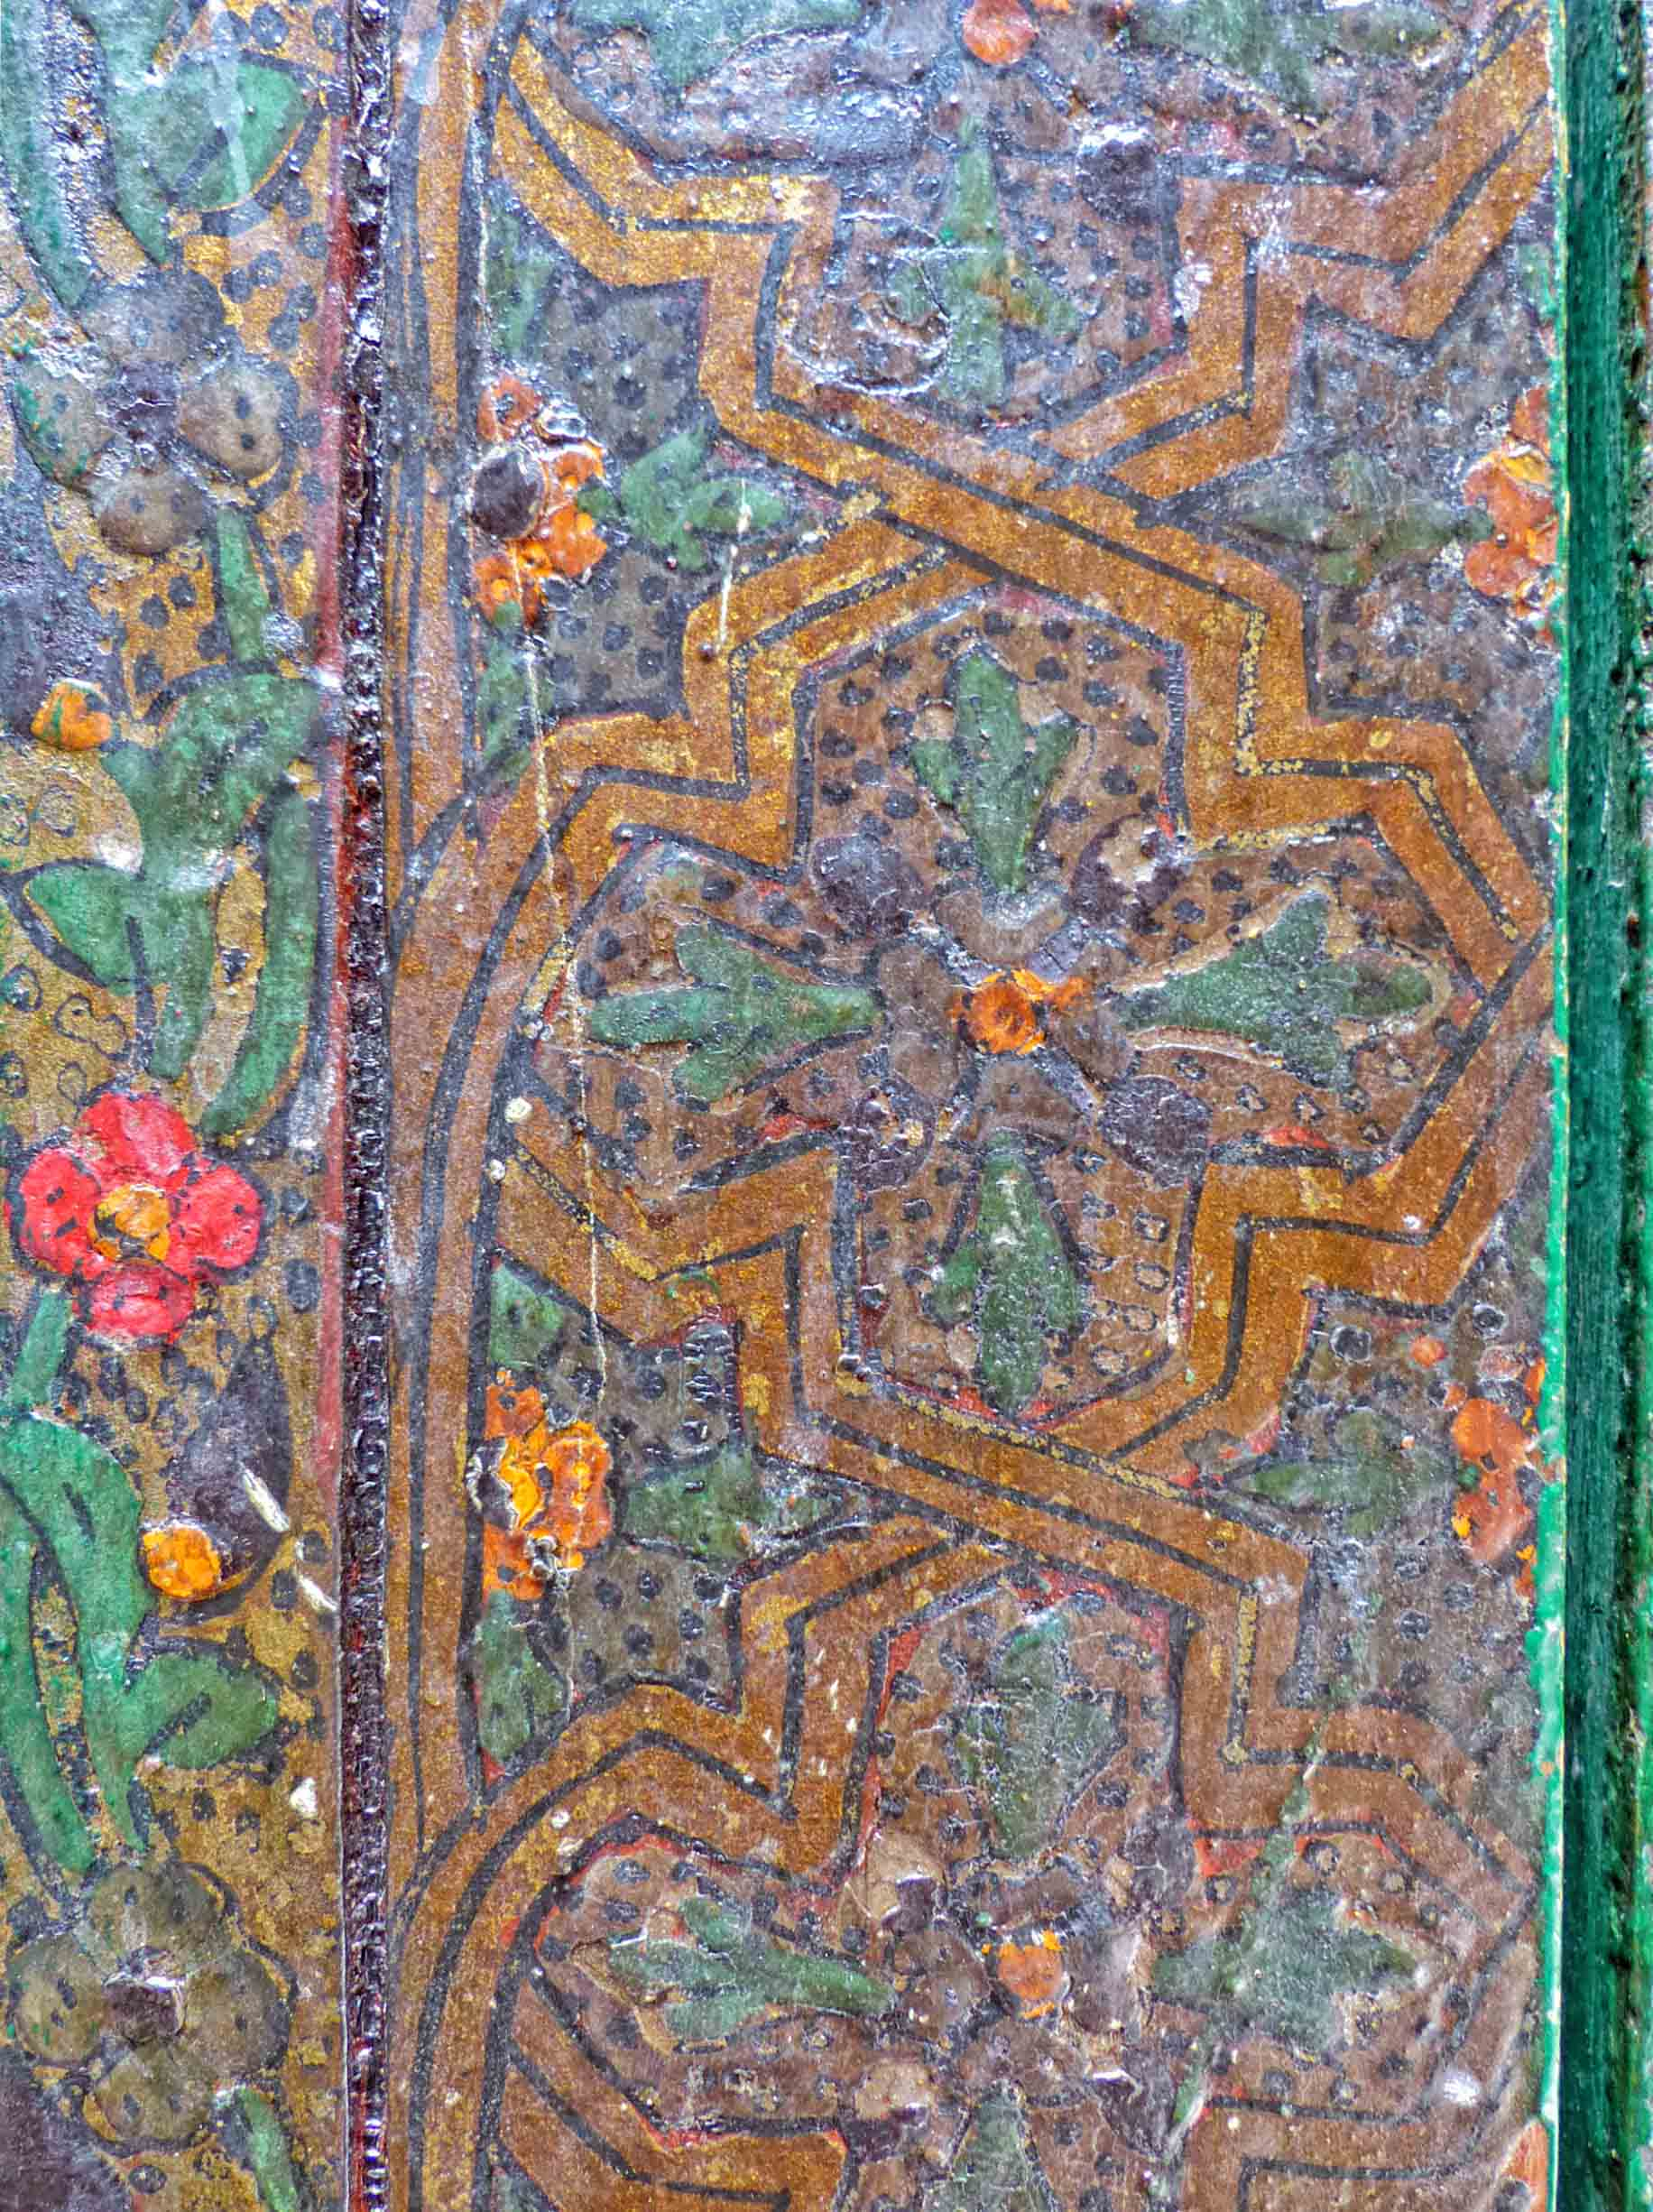 Painted wood with patterns and red and yellow flowers